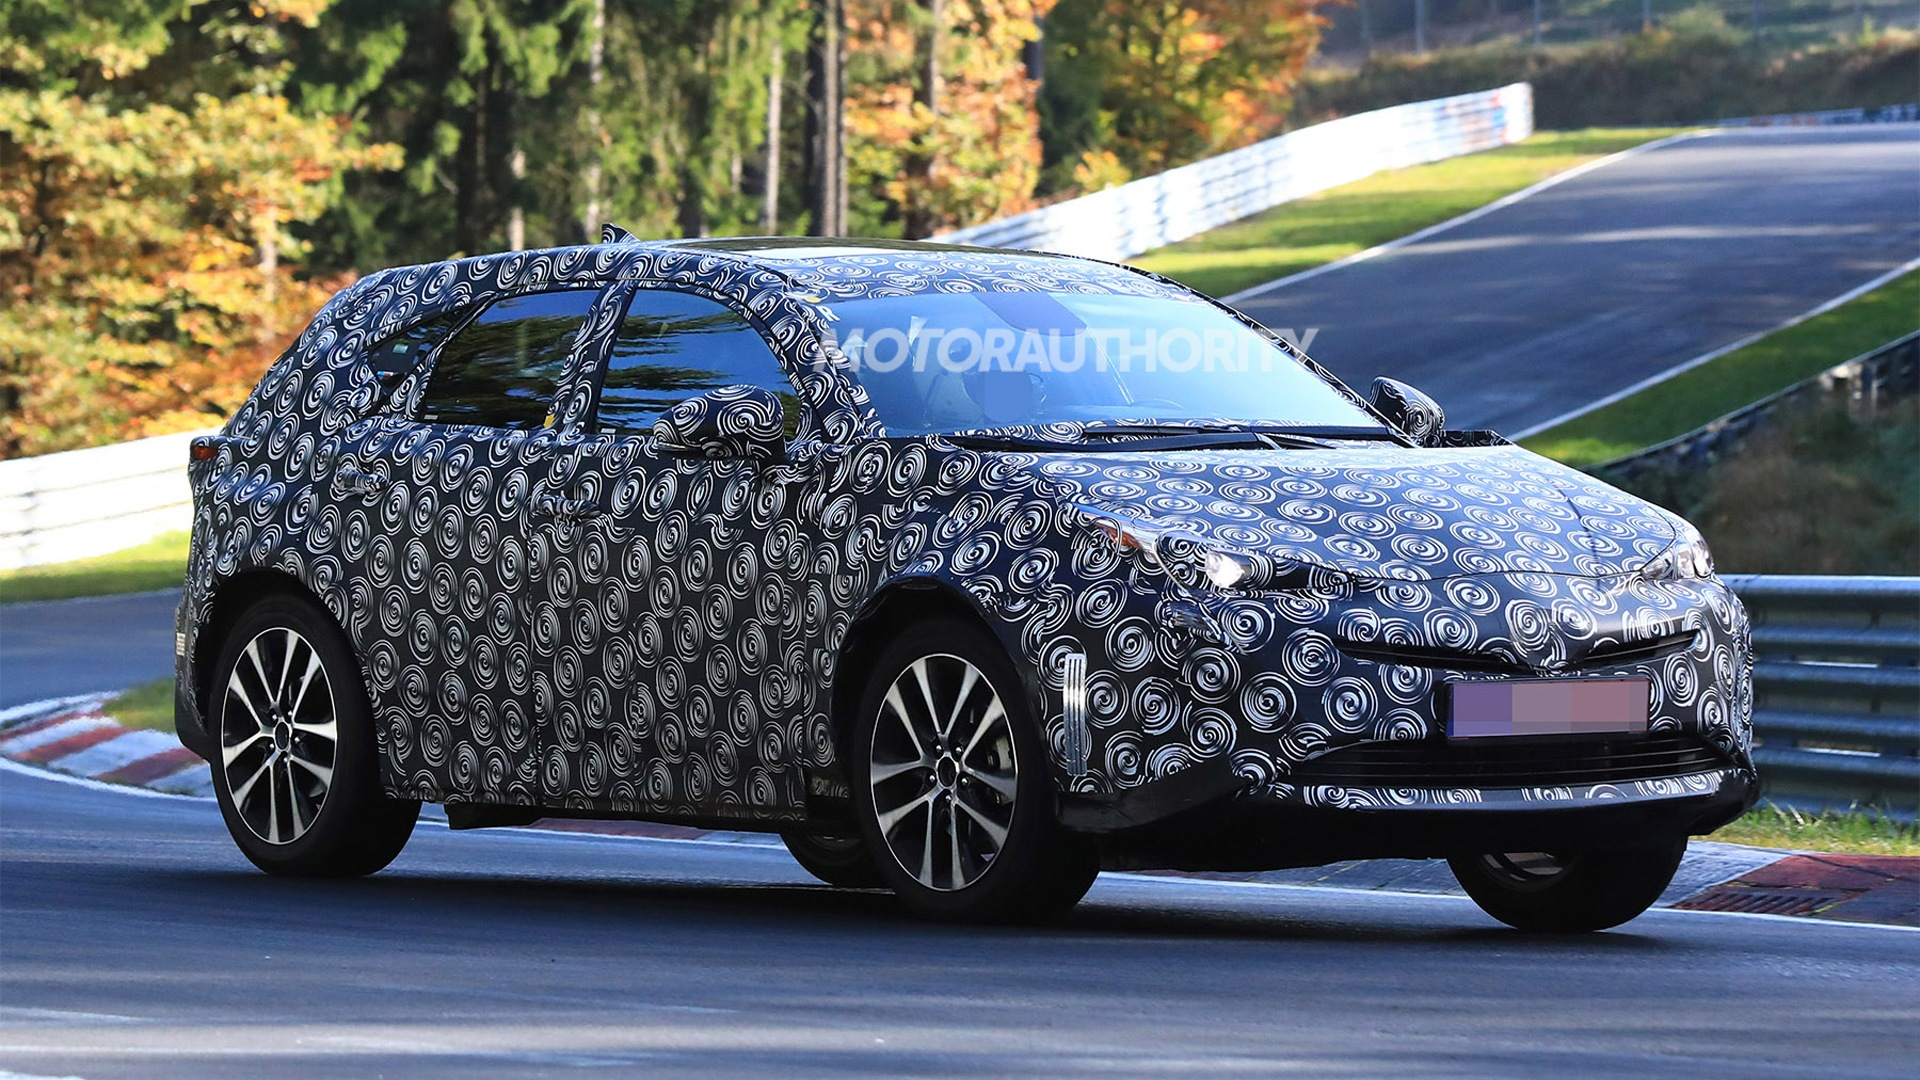 54 The Best 2020 Spy Shots Toyota Prius Interior